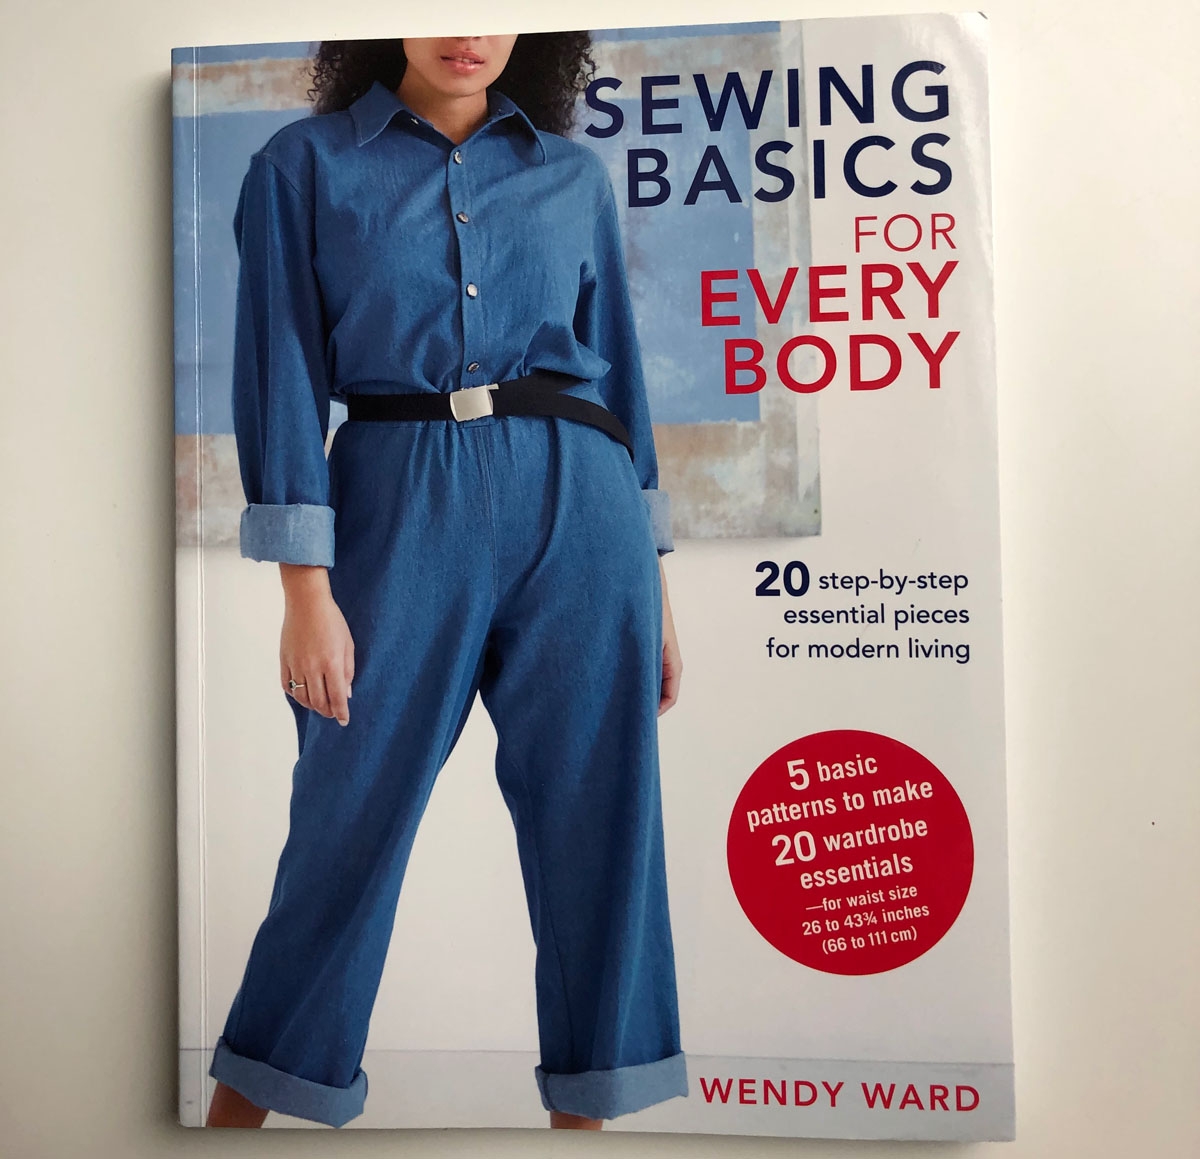 Gift guide: cover of the book Sewing Basics for Every Body